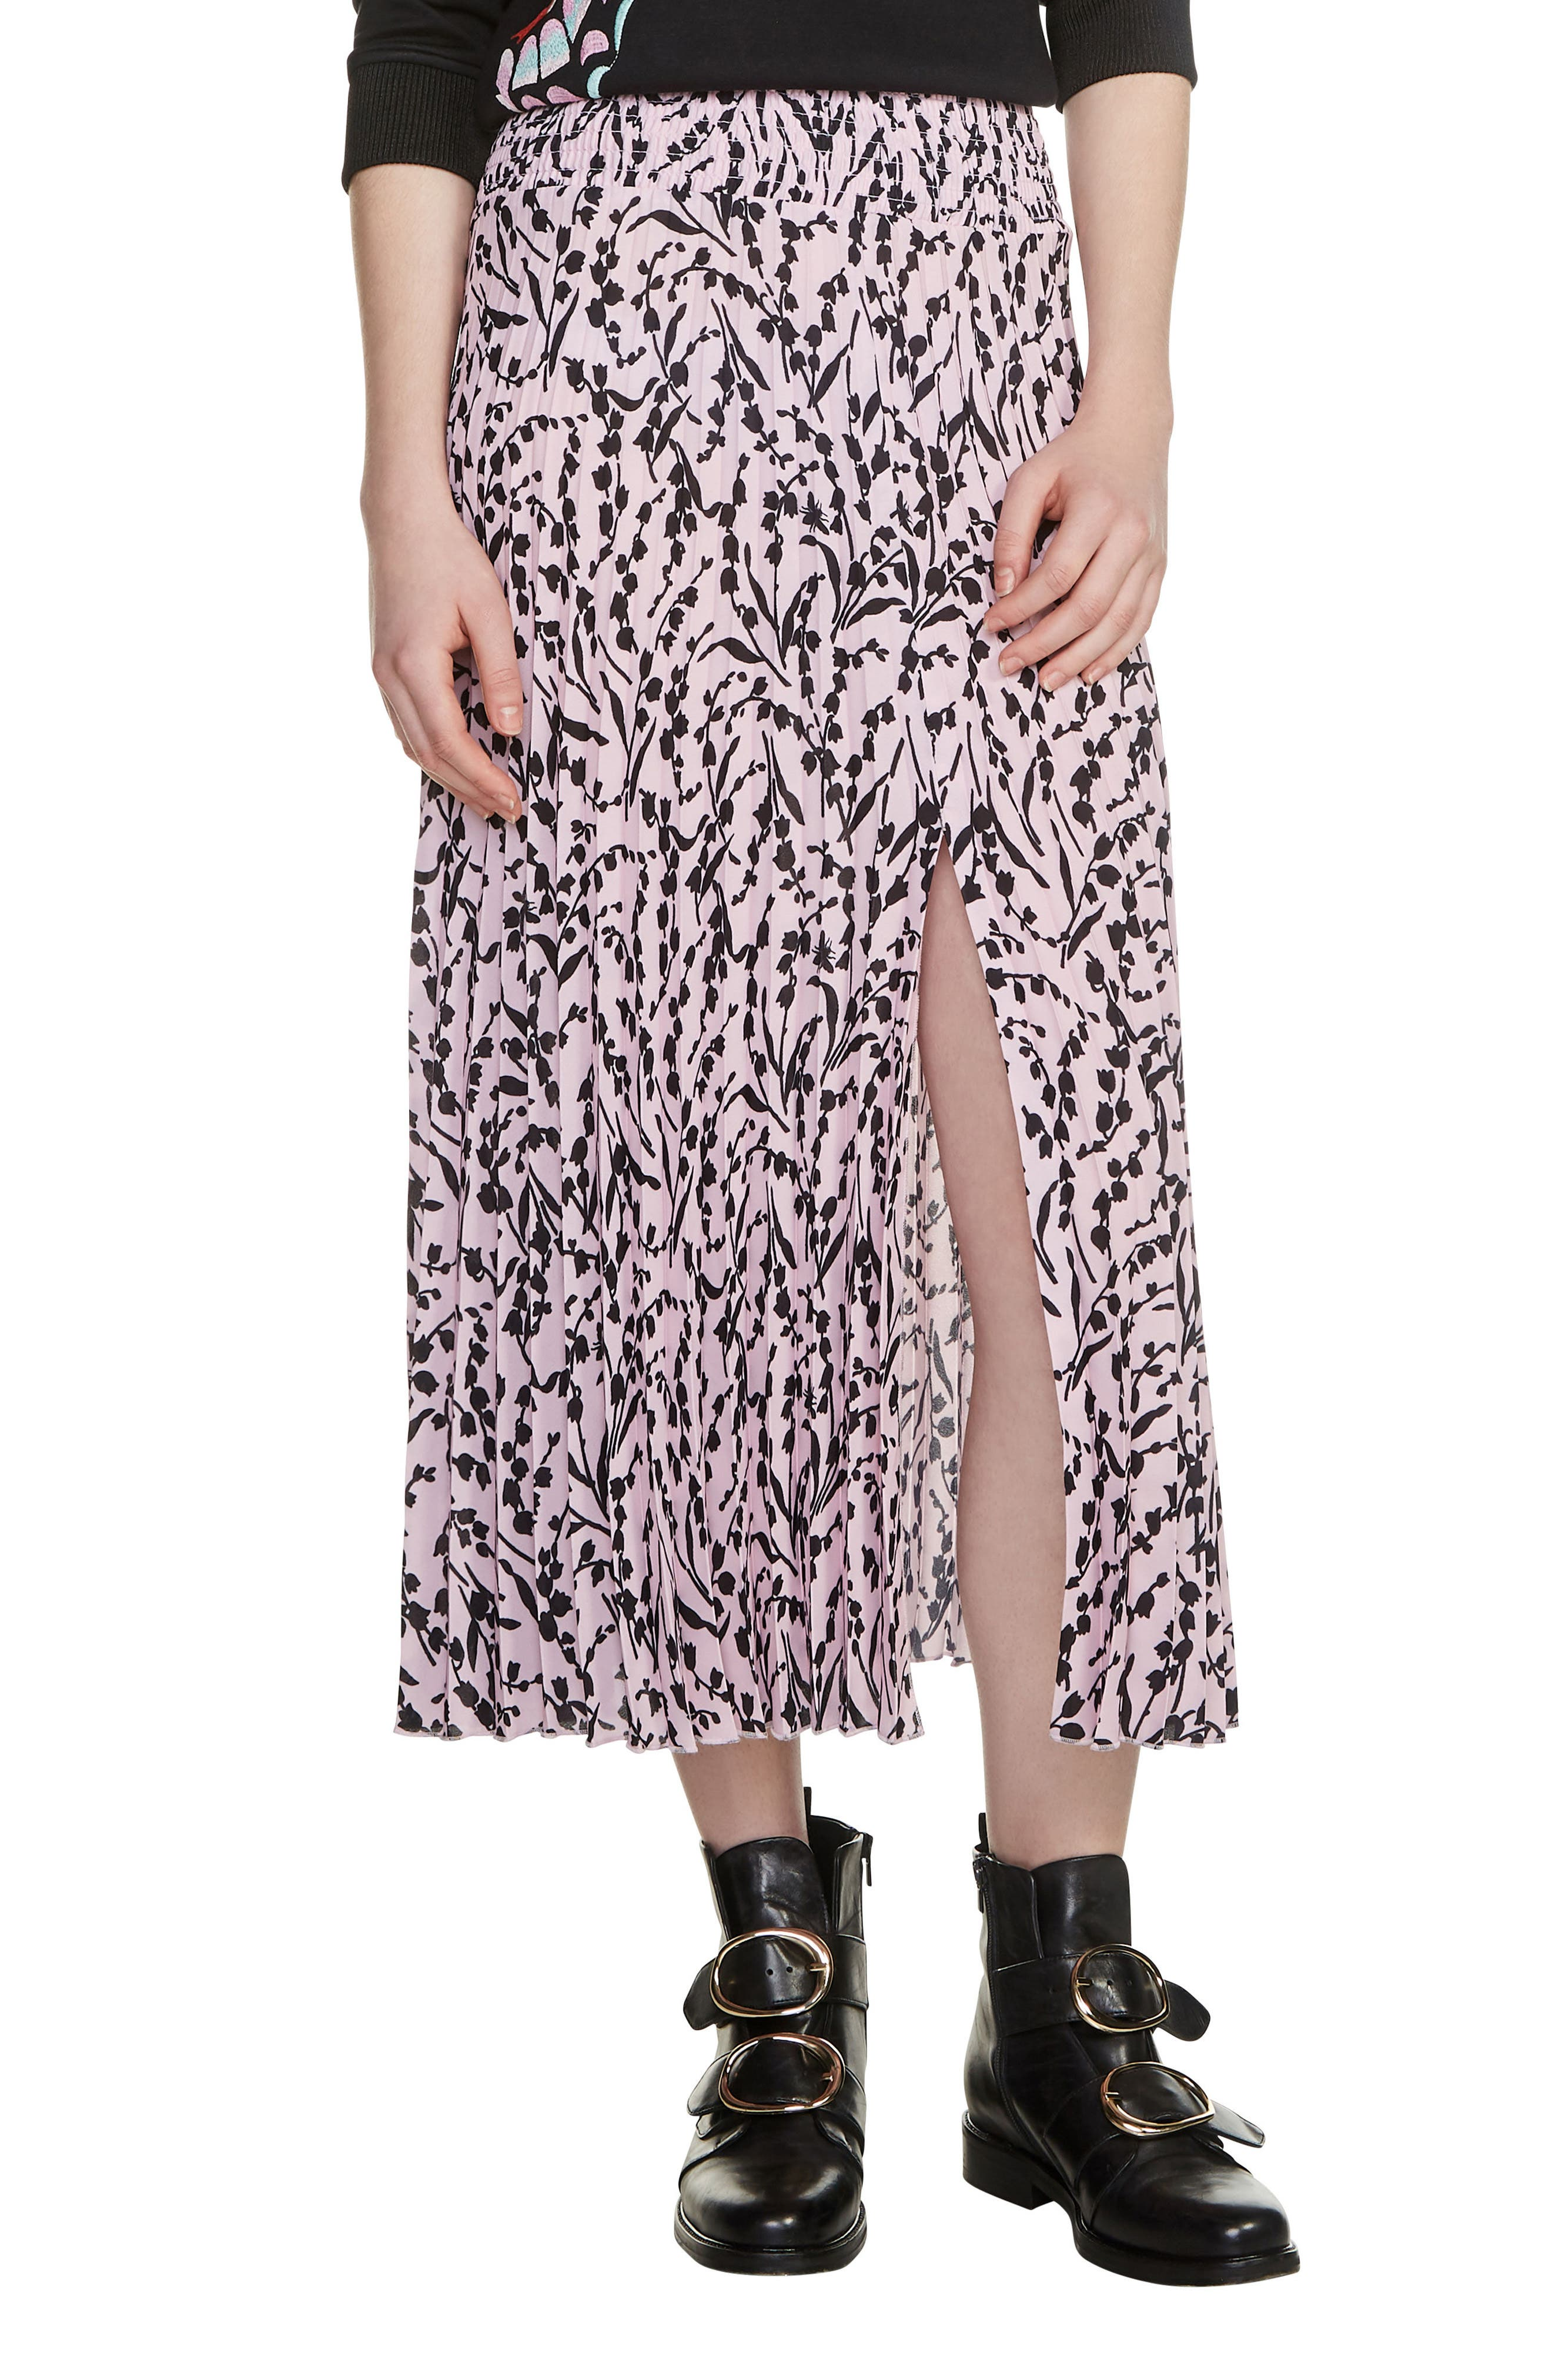 Javina Pleated Midi Skirt,                         Main,                         color,